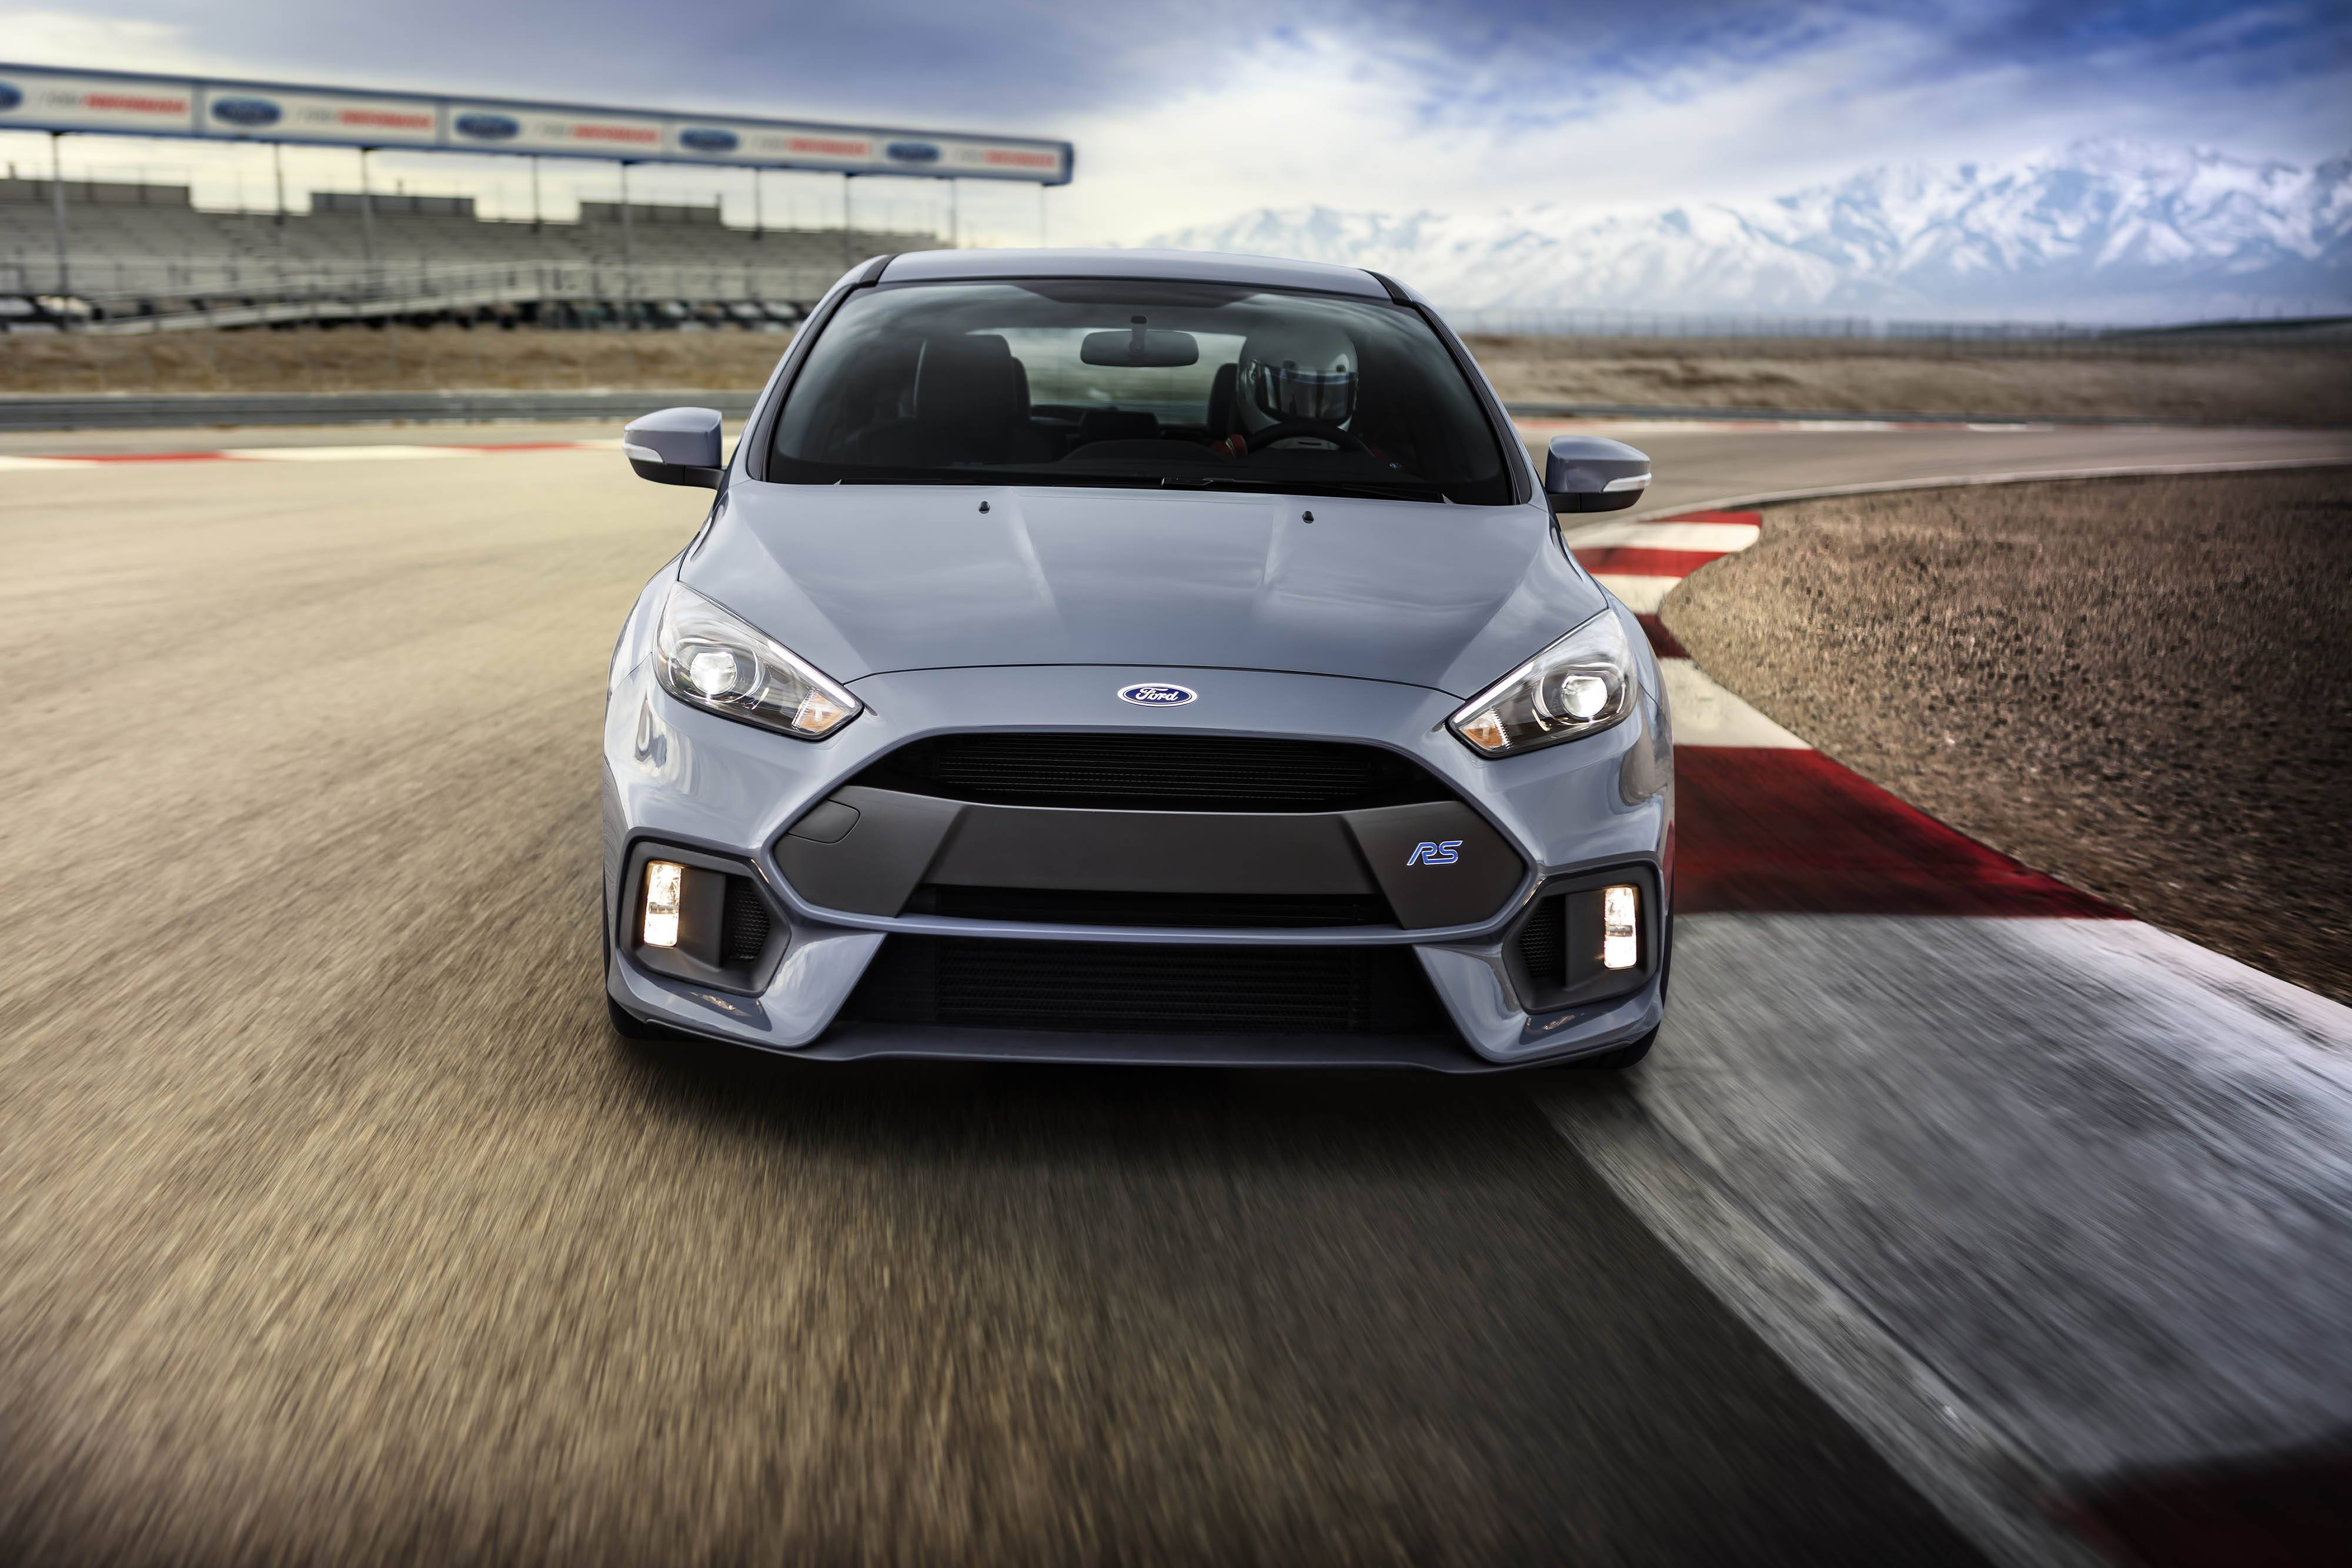 2 way splitter bathroom drainage diagram 2017 ford focus rs hatchback | the legacy continues ford.com